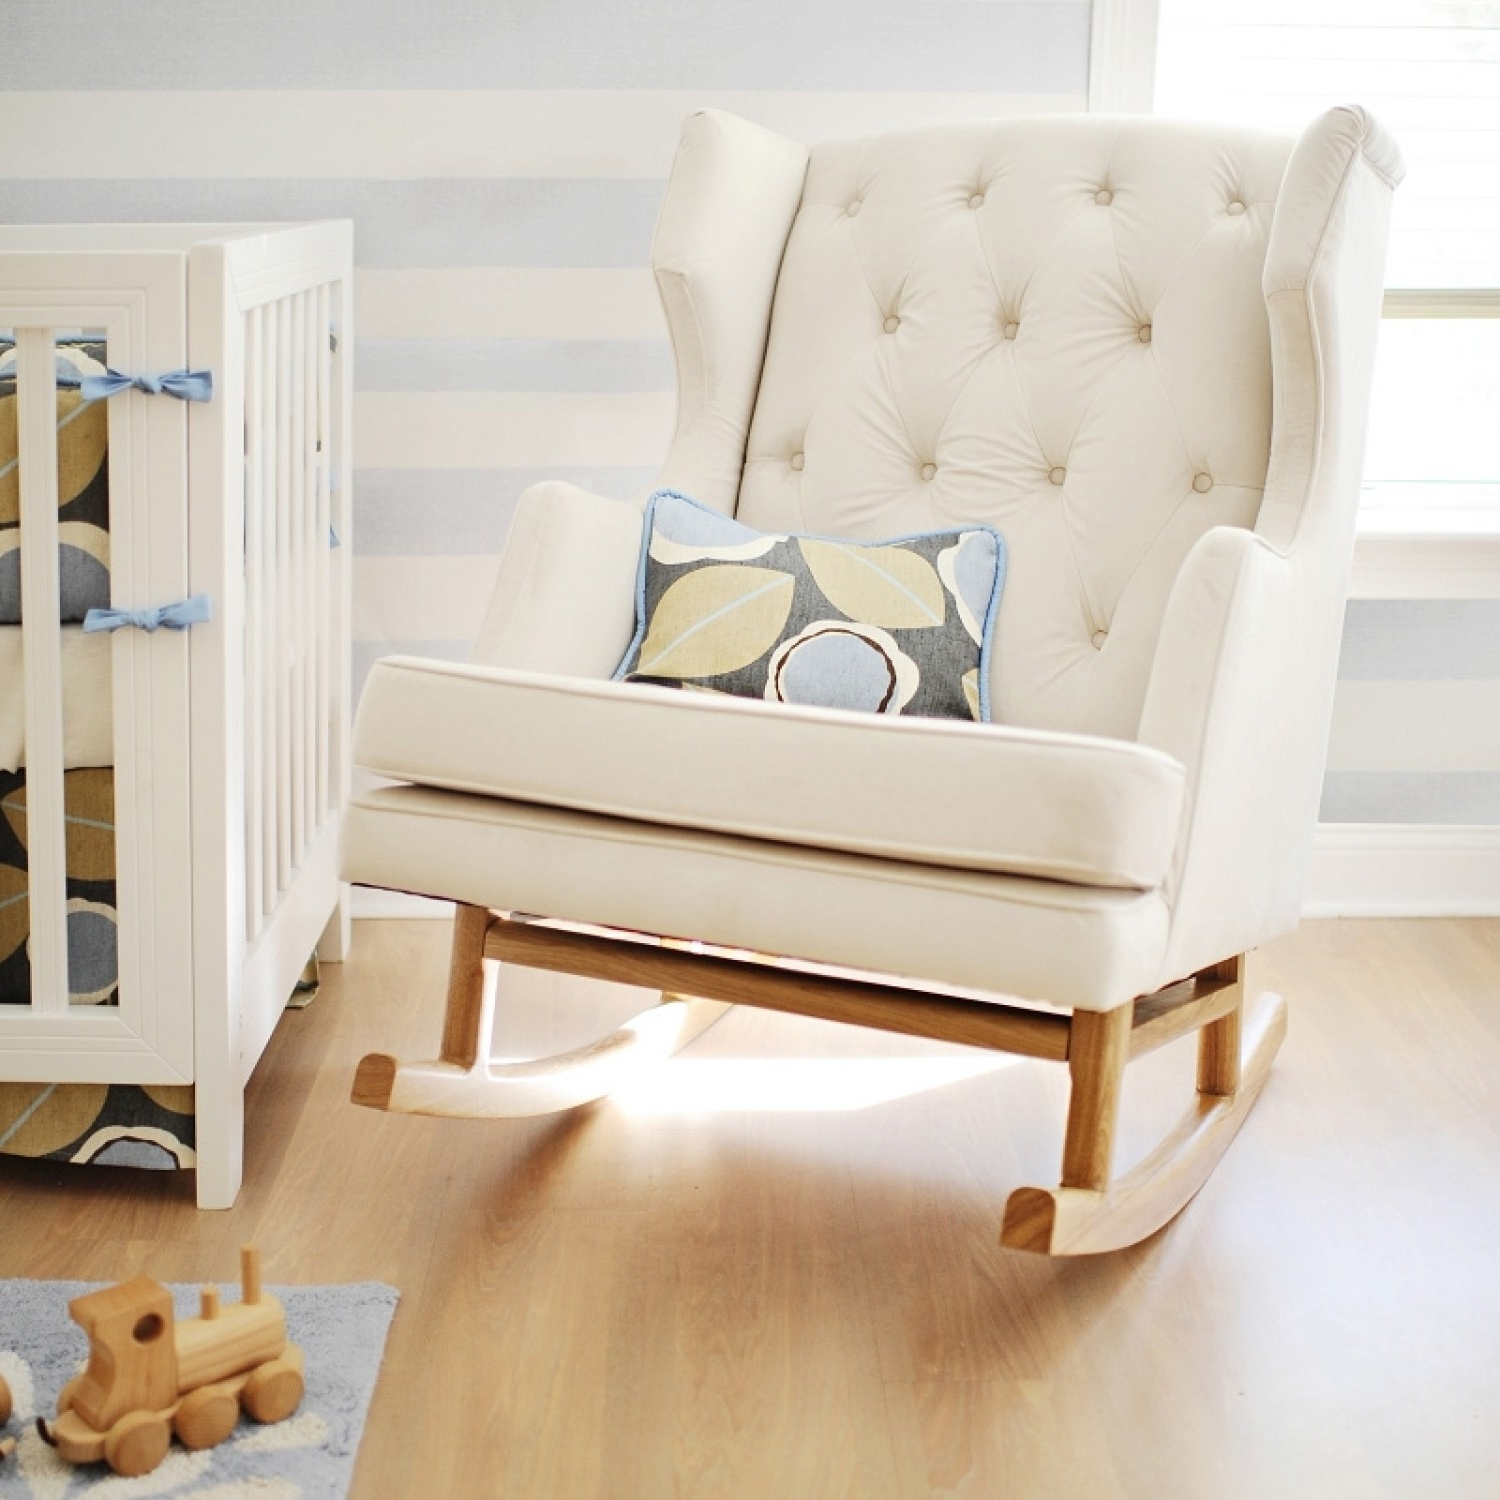 Best And Newest Graceful Comfortable Rocking Chair 0 Favorable On Modern Design With For Rocking Chairs For Nursing (View 2 of 15)